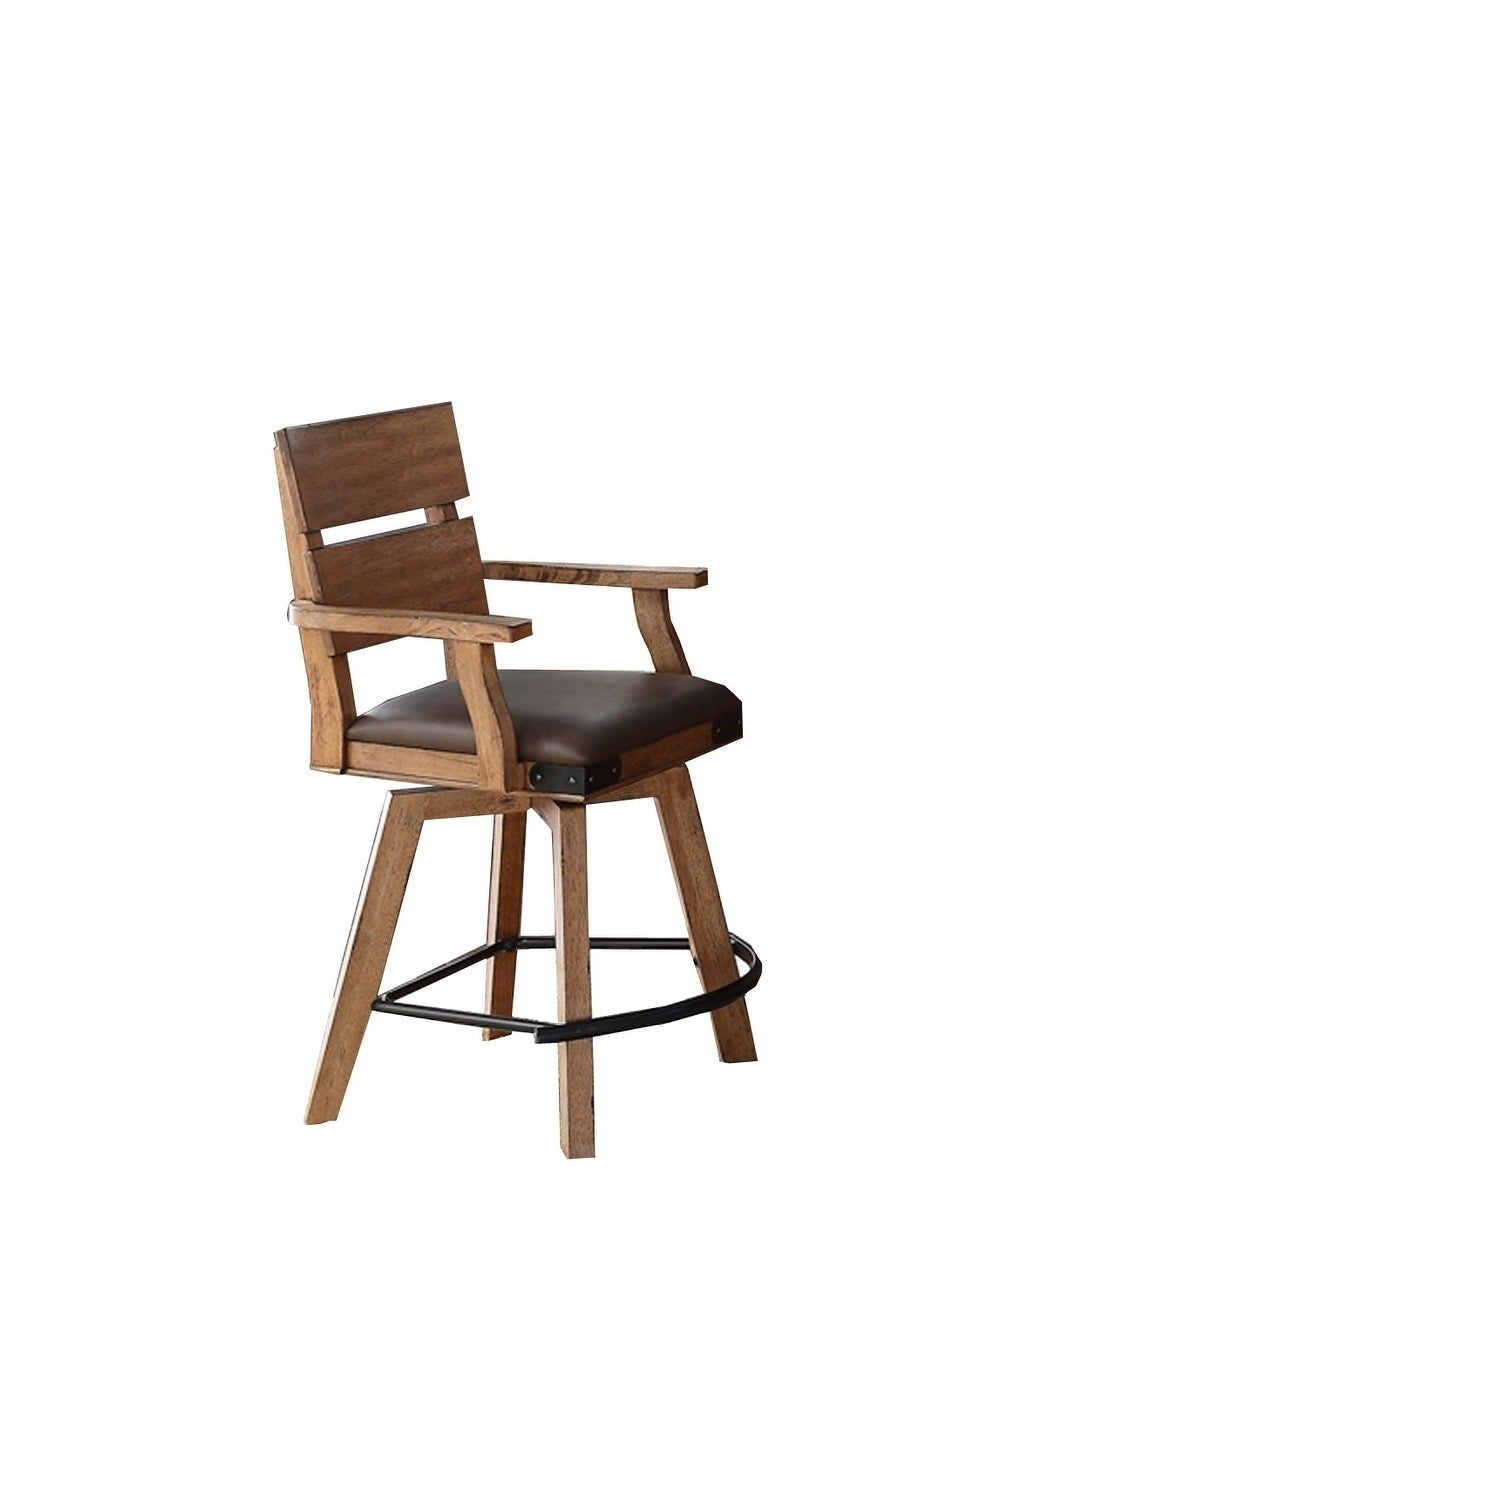 Shop whitaker furniture set of 2 shenandoah 24 spectator stools free shipping today overstock com 17755562